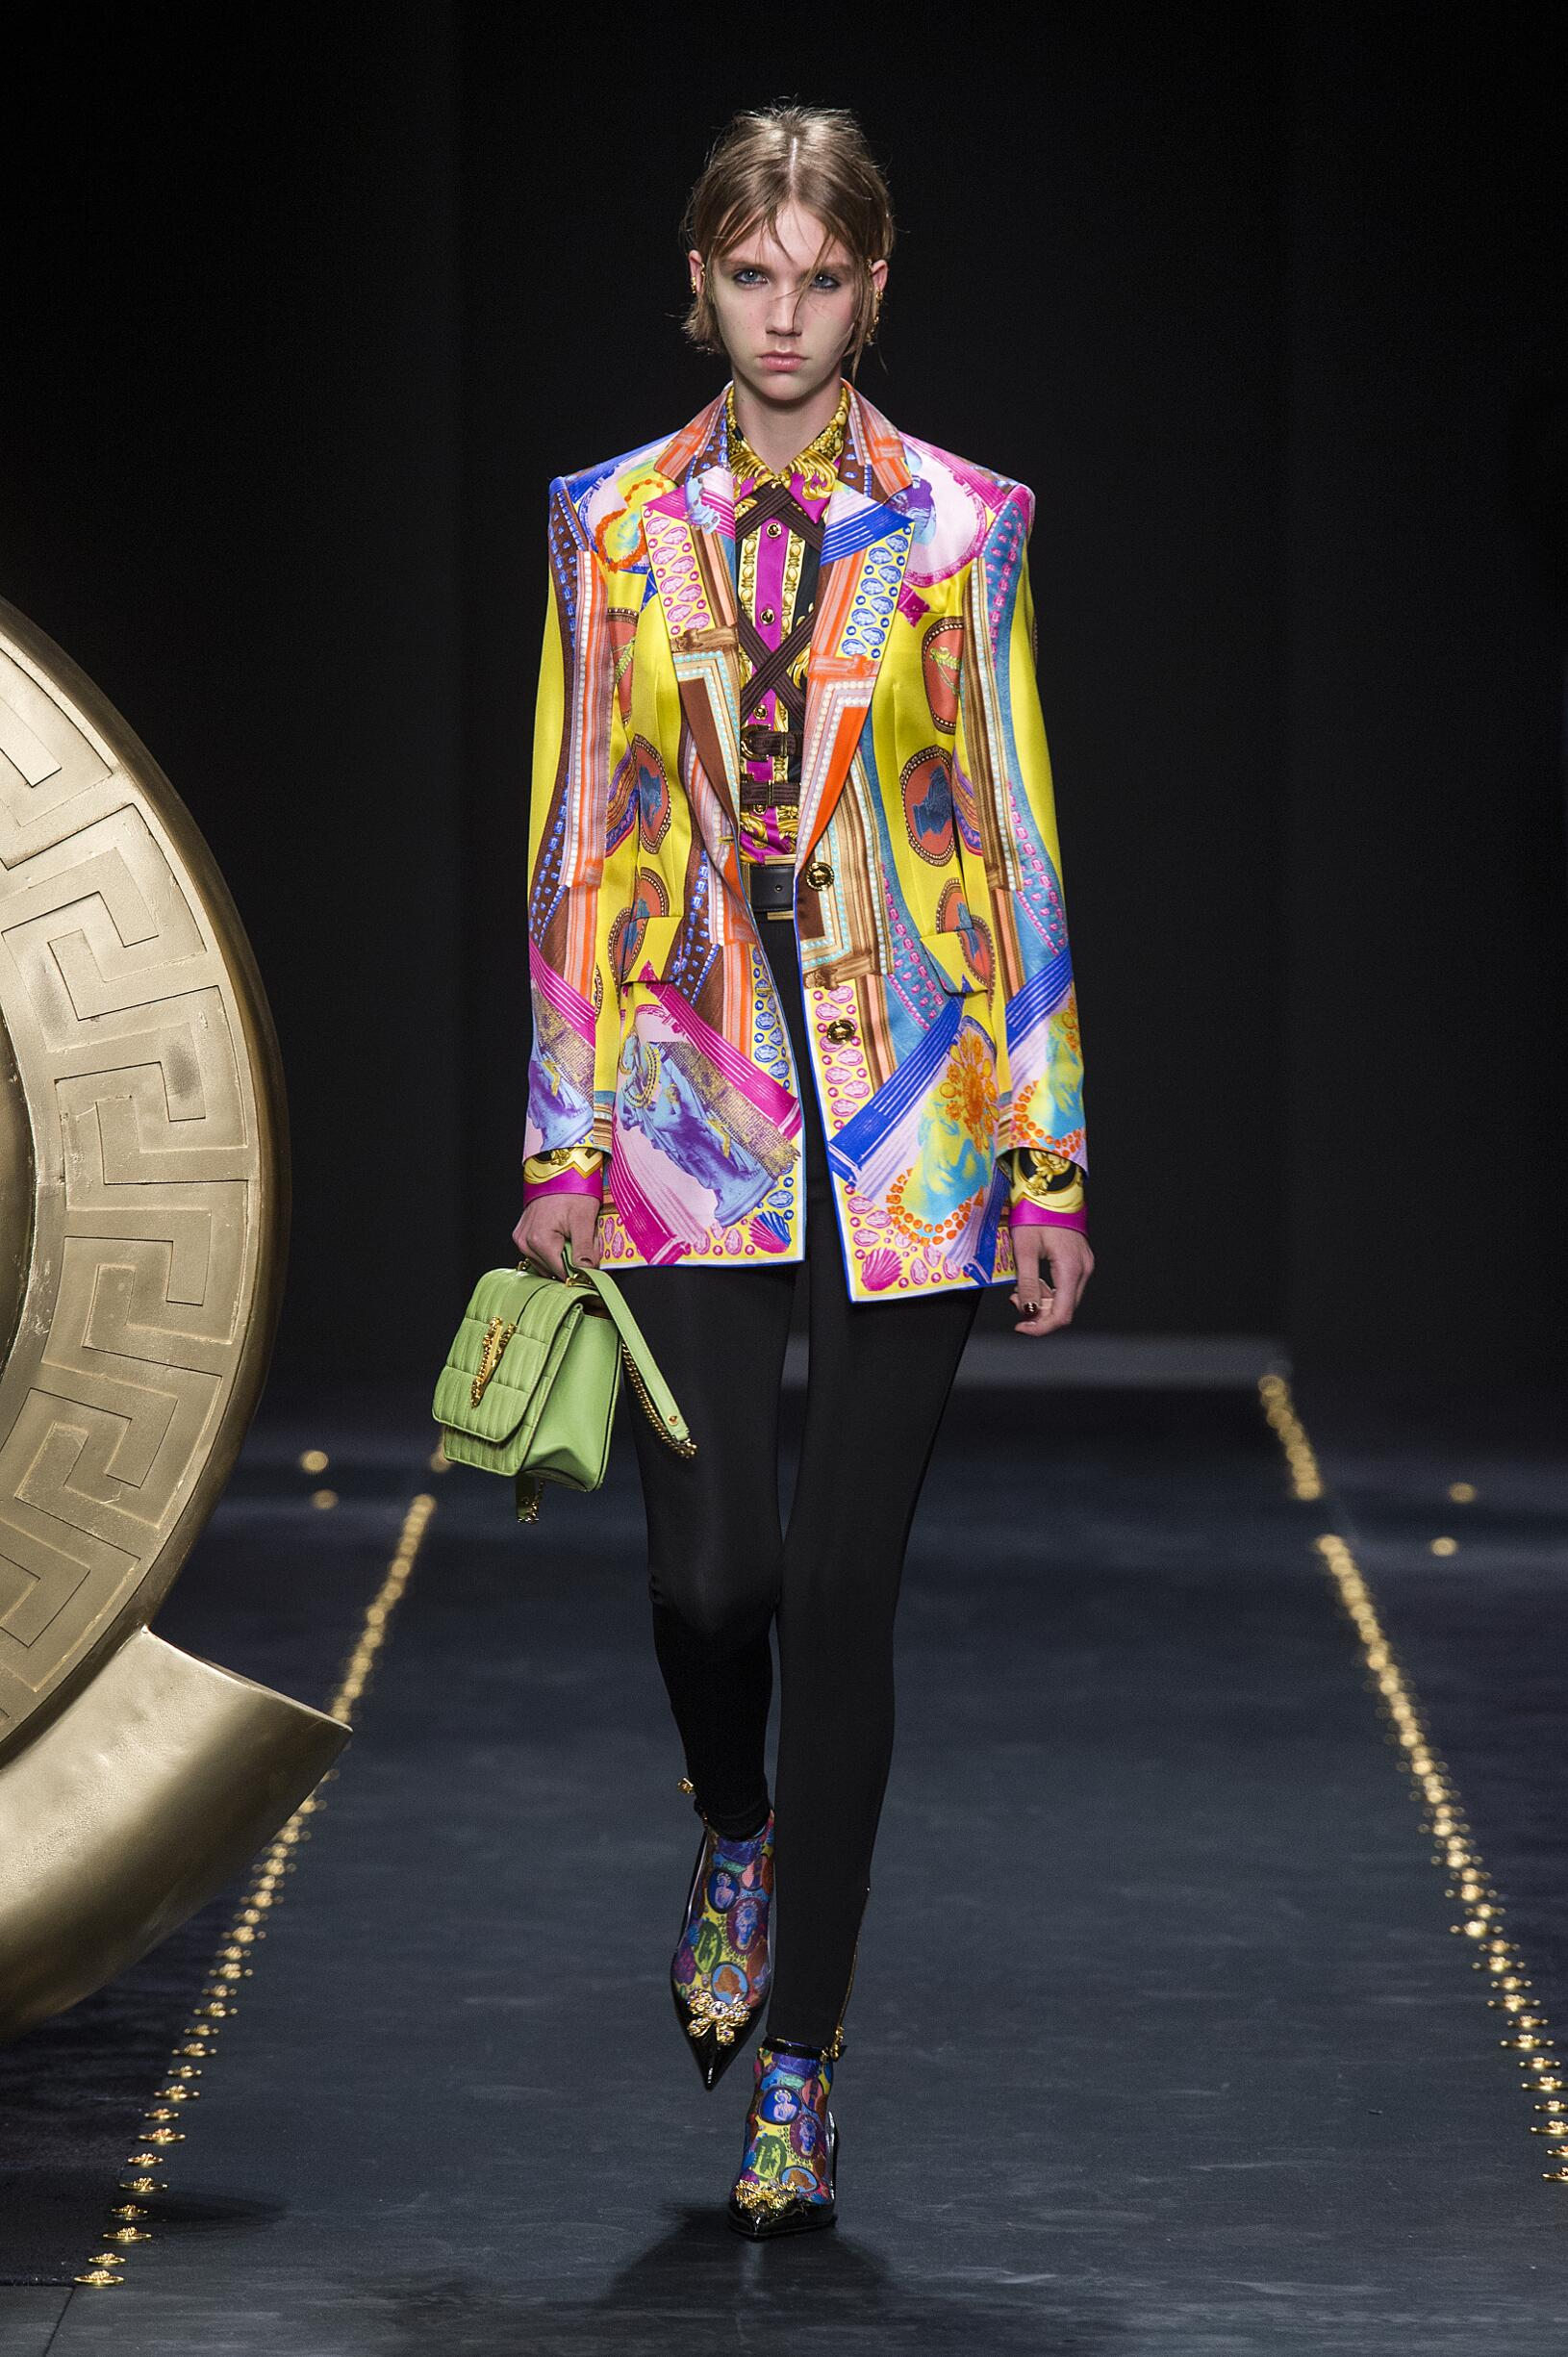 Woman FW 2019 Versace Show Milan Fashion Week